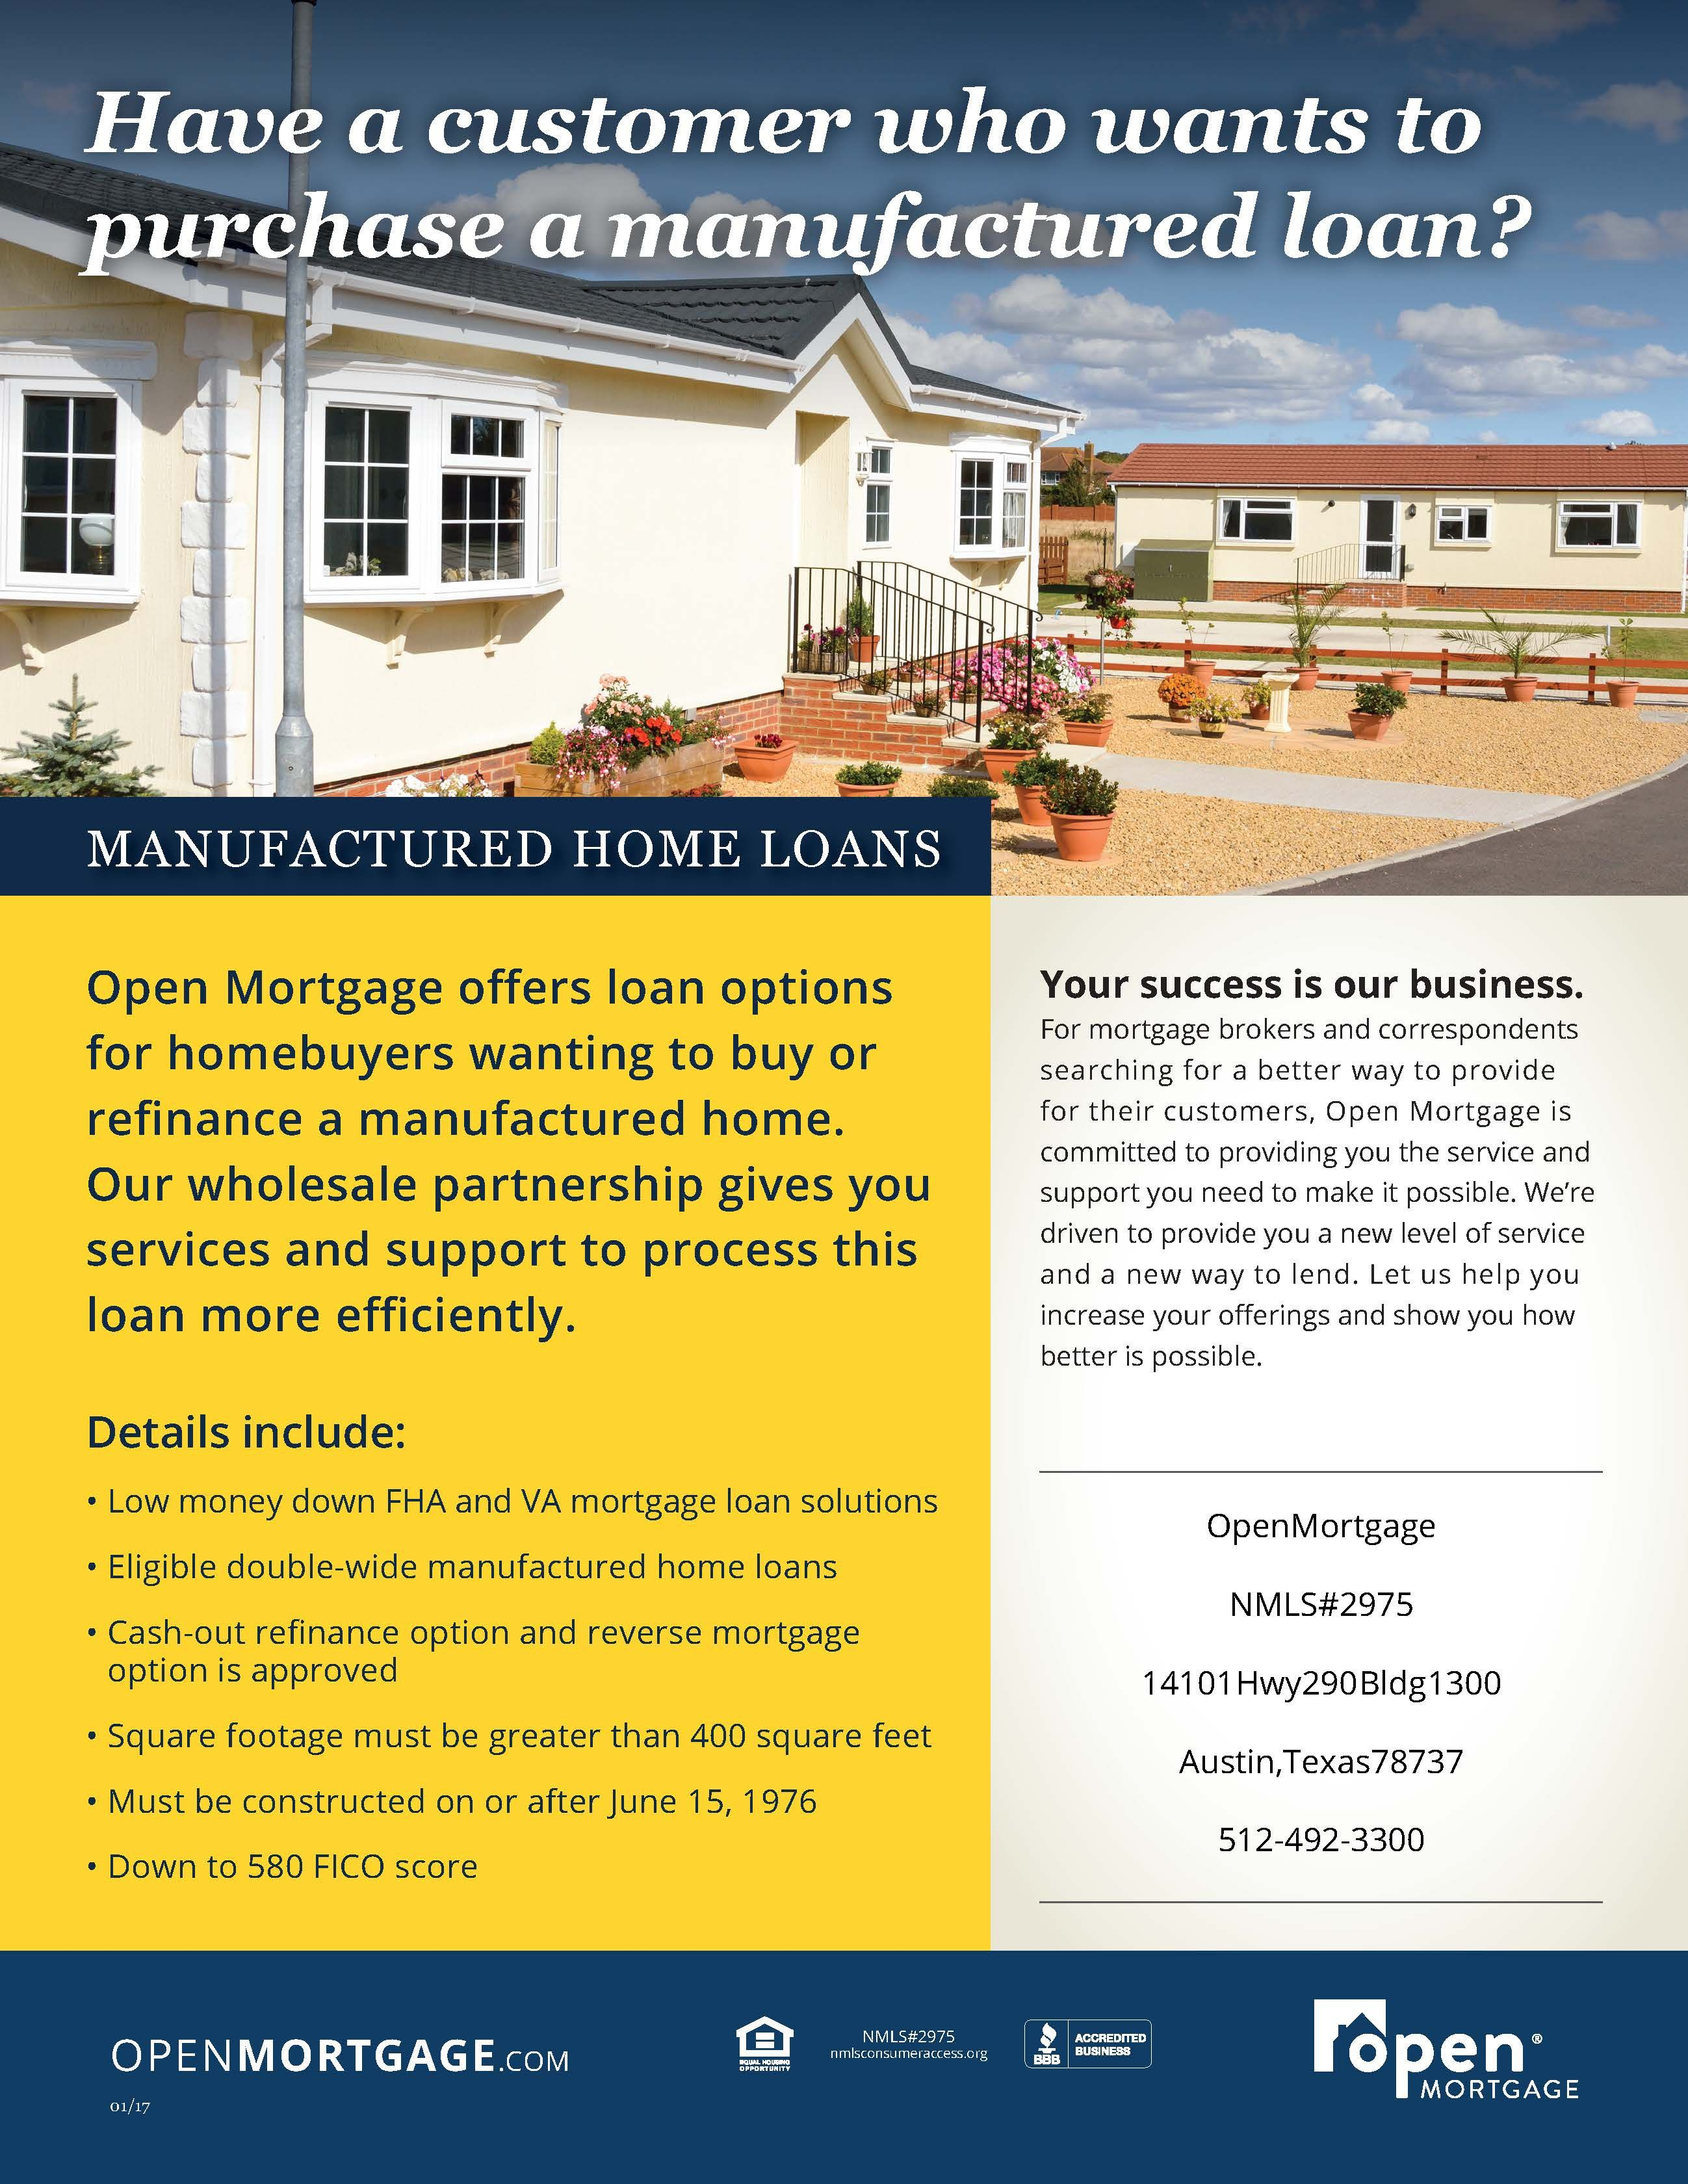 Open Mortgage Provides Wholesale Services Through Programs Such As Manufactured Home Loans To Process The Loa Debt Relief Programs Home Loans Mortgage Brokers